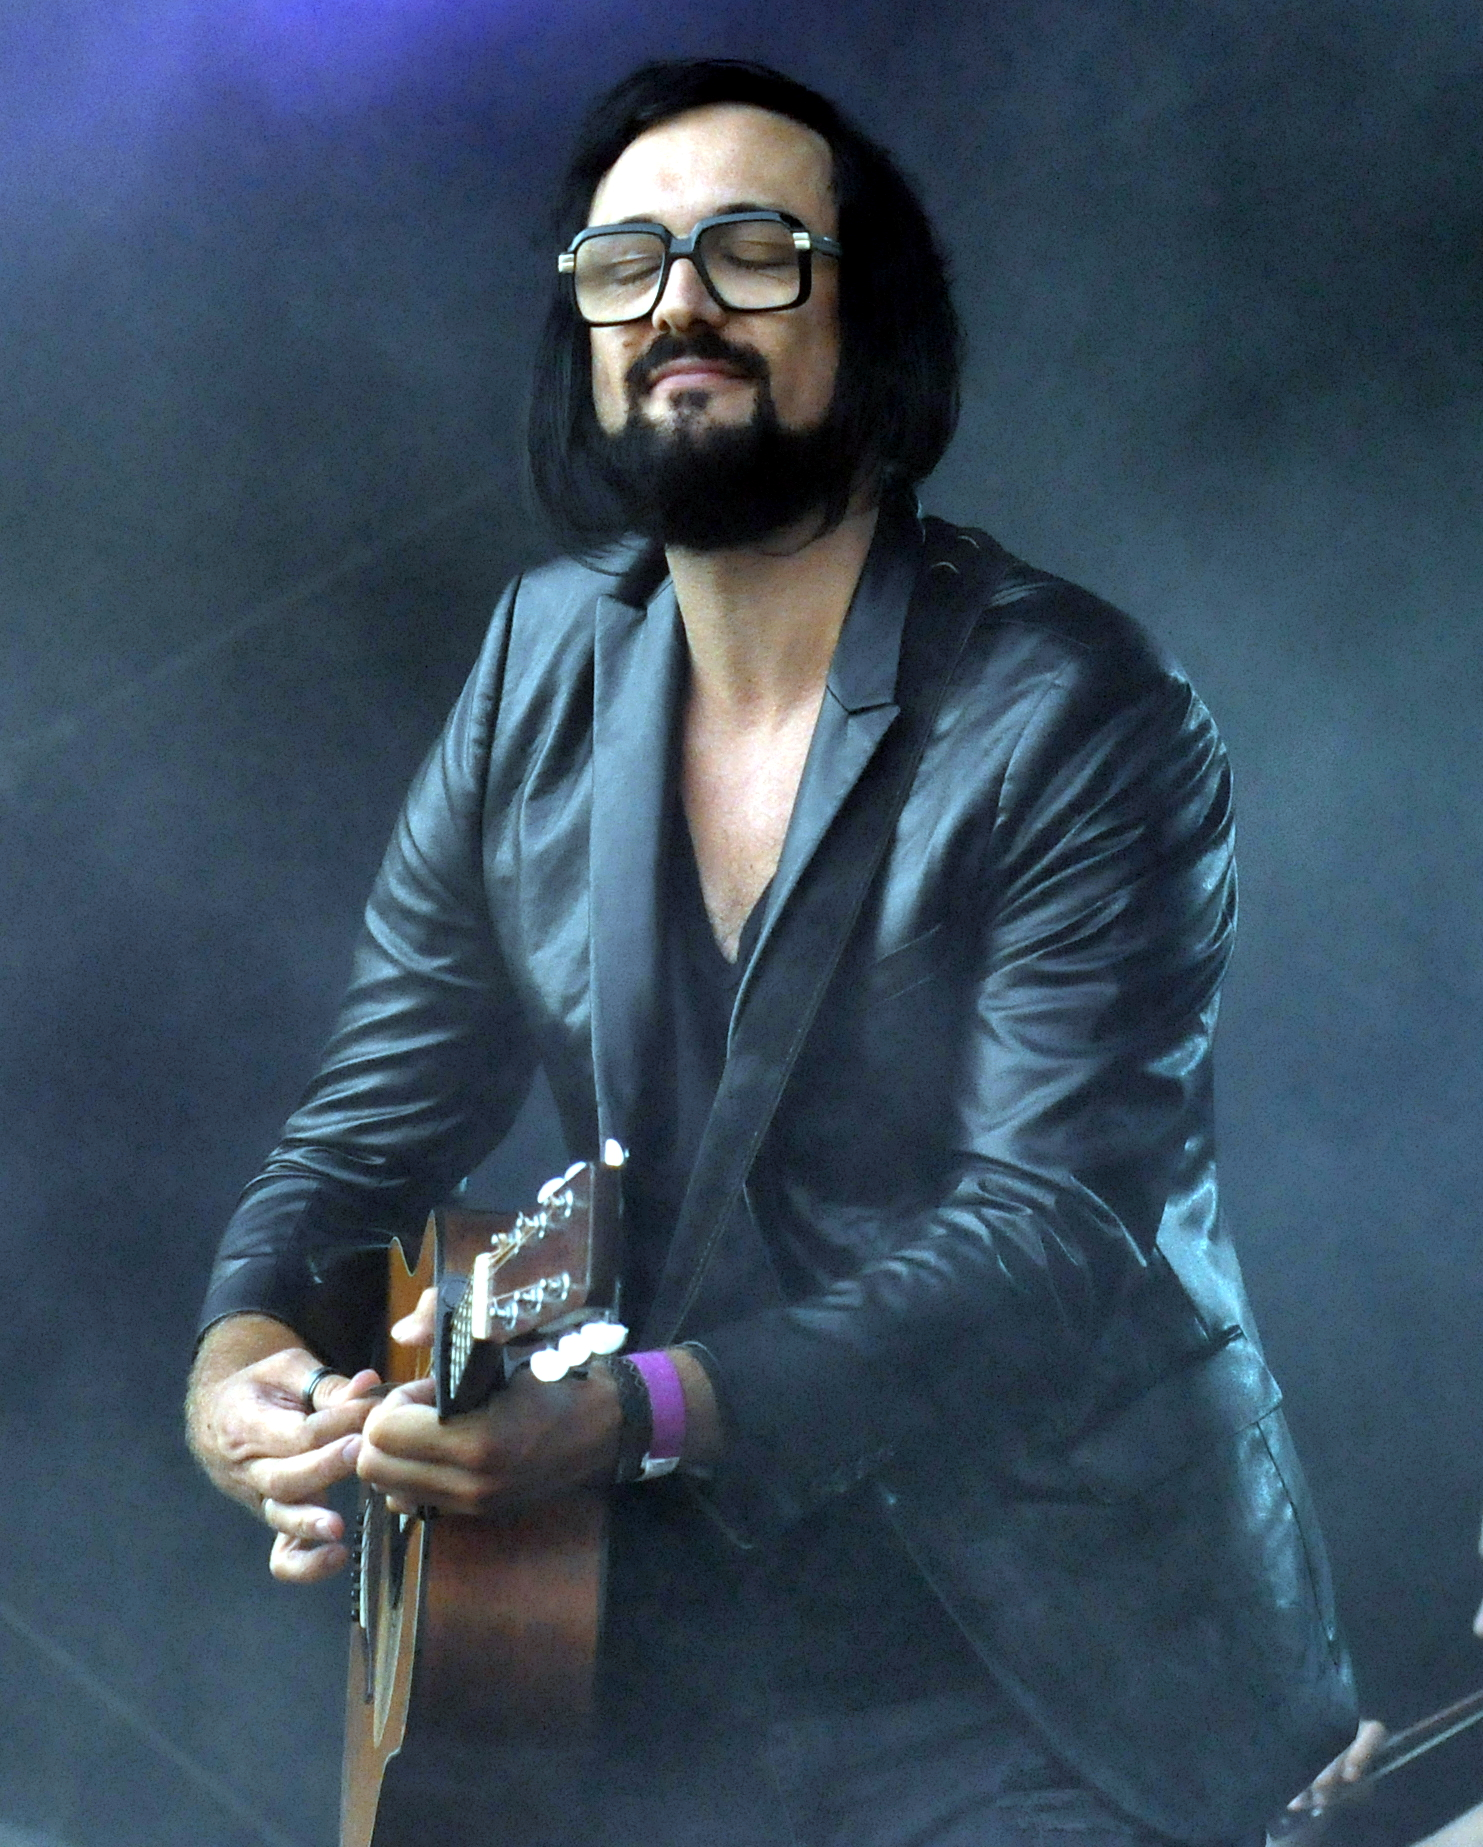 The 43-year old son of father (?) and mother(?) Blaudzun in 2018 photo. Blaudzun earned a  million dollar salary - leaving the net worth at 0.3 million in 2018